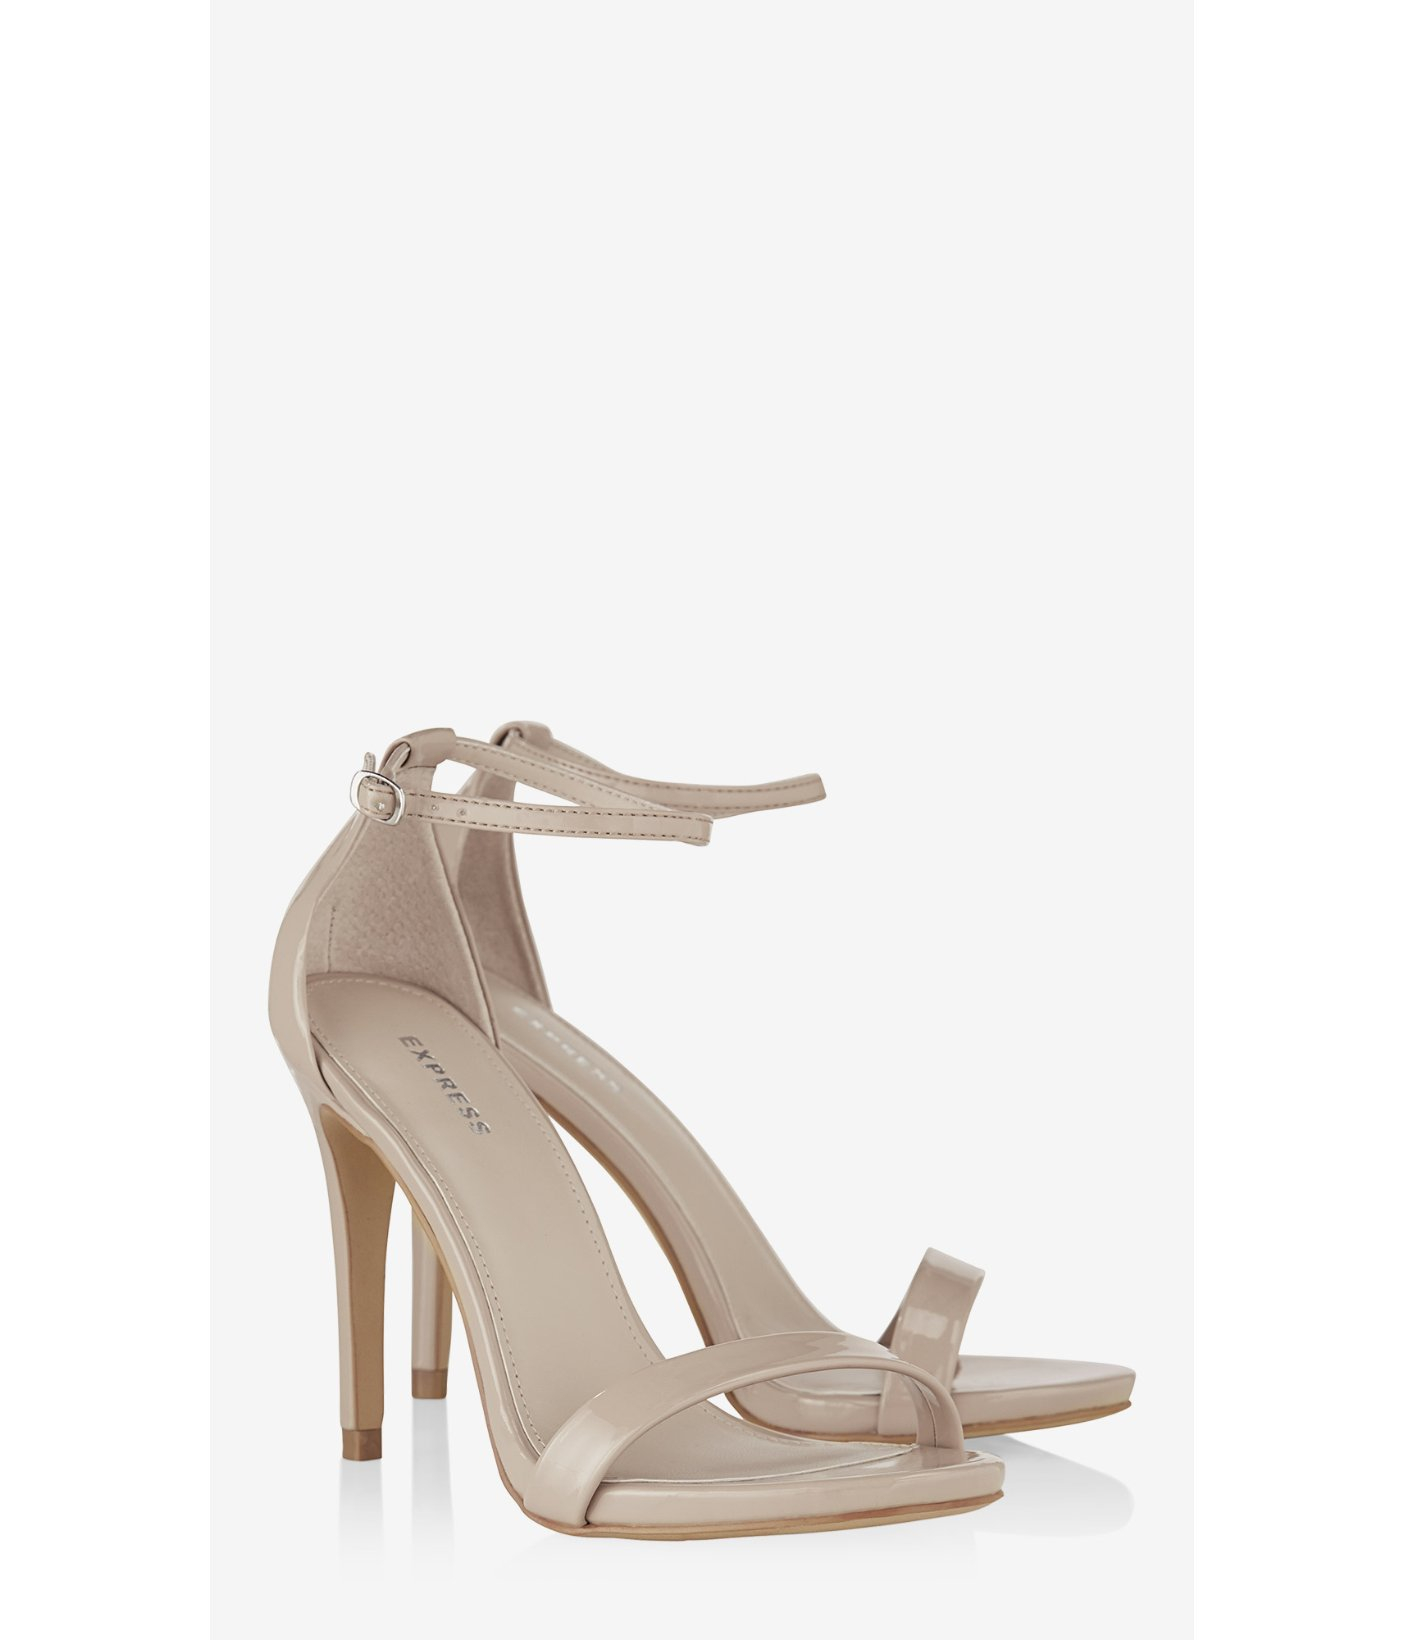 24e8c120a4be Lyst - Express Sleek Patent Runway Sandal in Natural